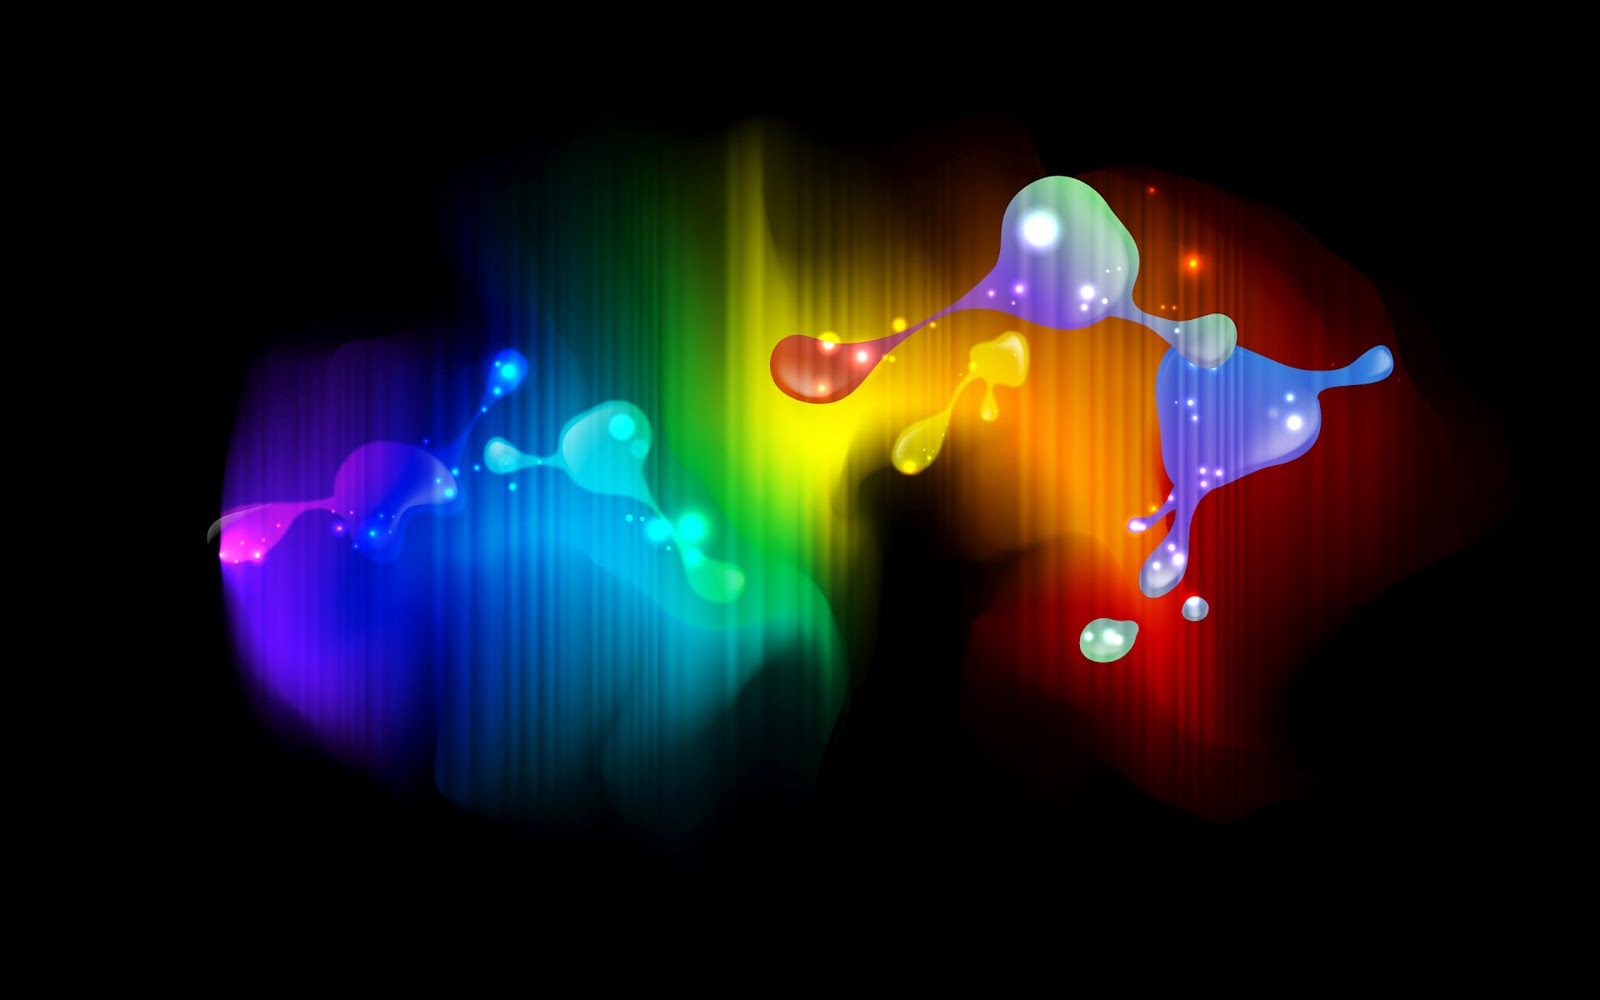 http://4.bp.blogspot.com/-WWMVJo1j2yU/T7lH5hmHwBI/AAAAAAAABt8/jBJrh5YMZPM/s1600/ws_Colorful_Abstract_2560x1600.jpg